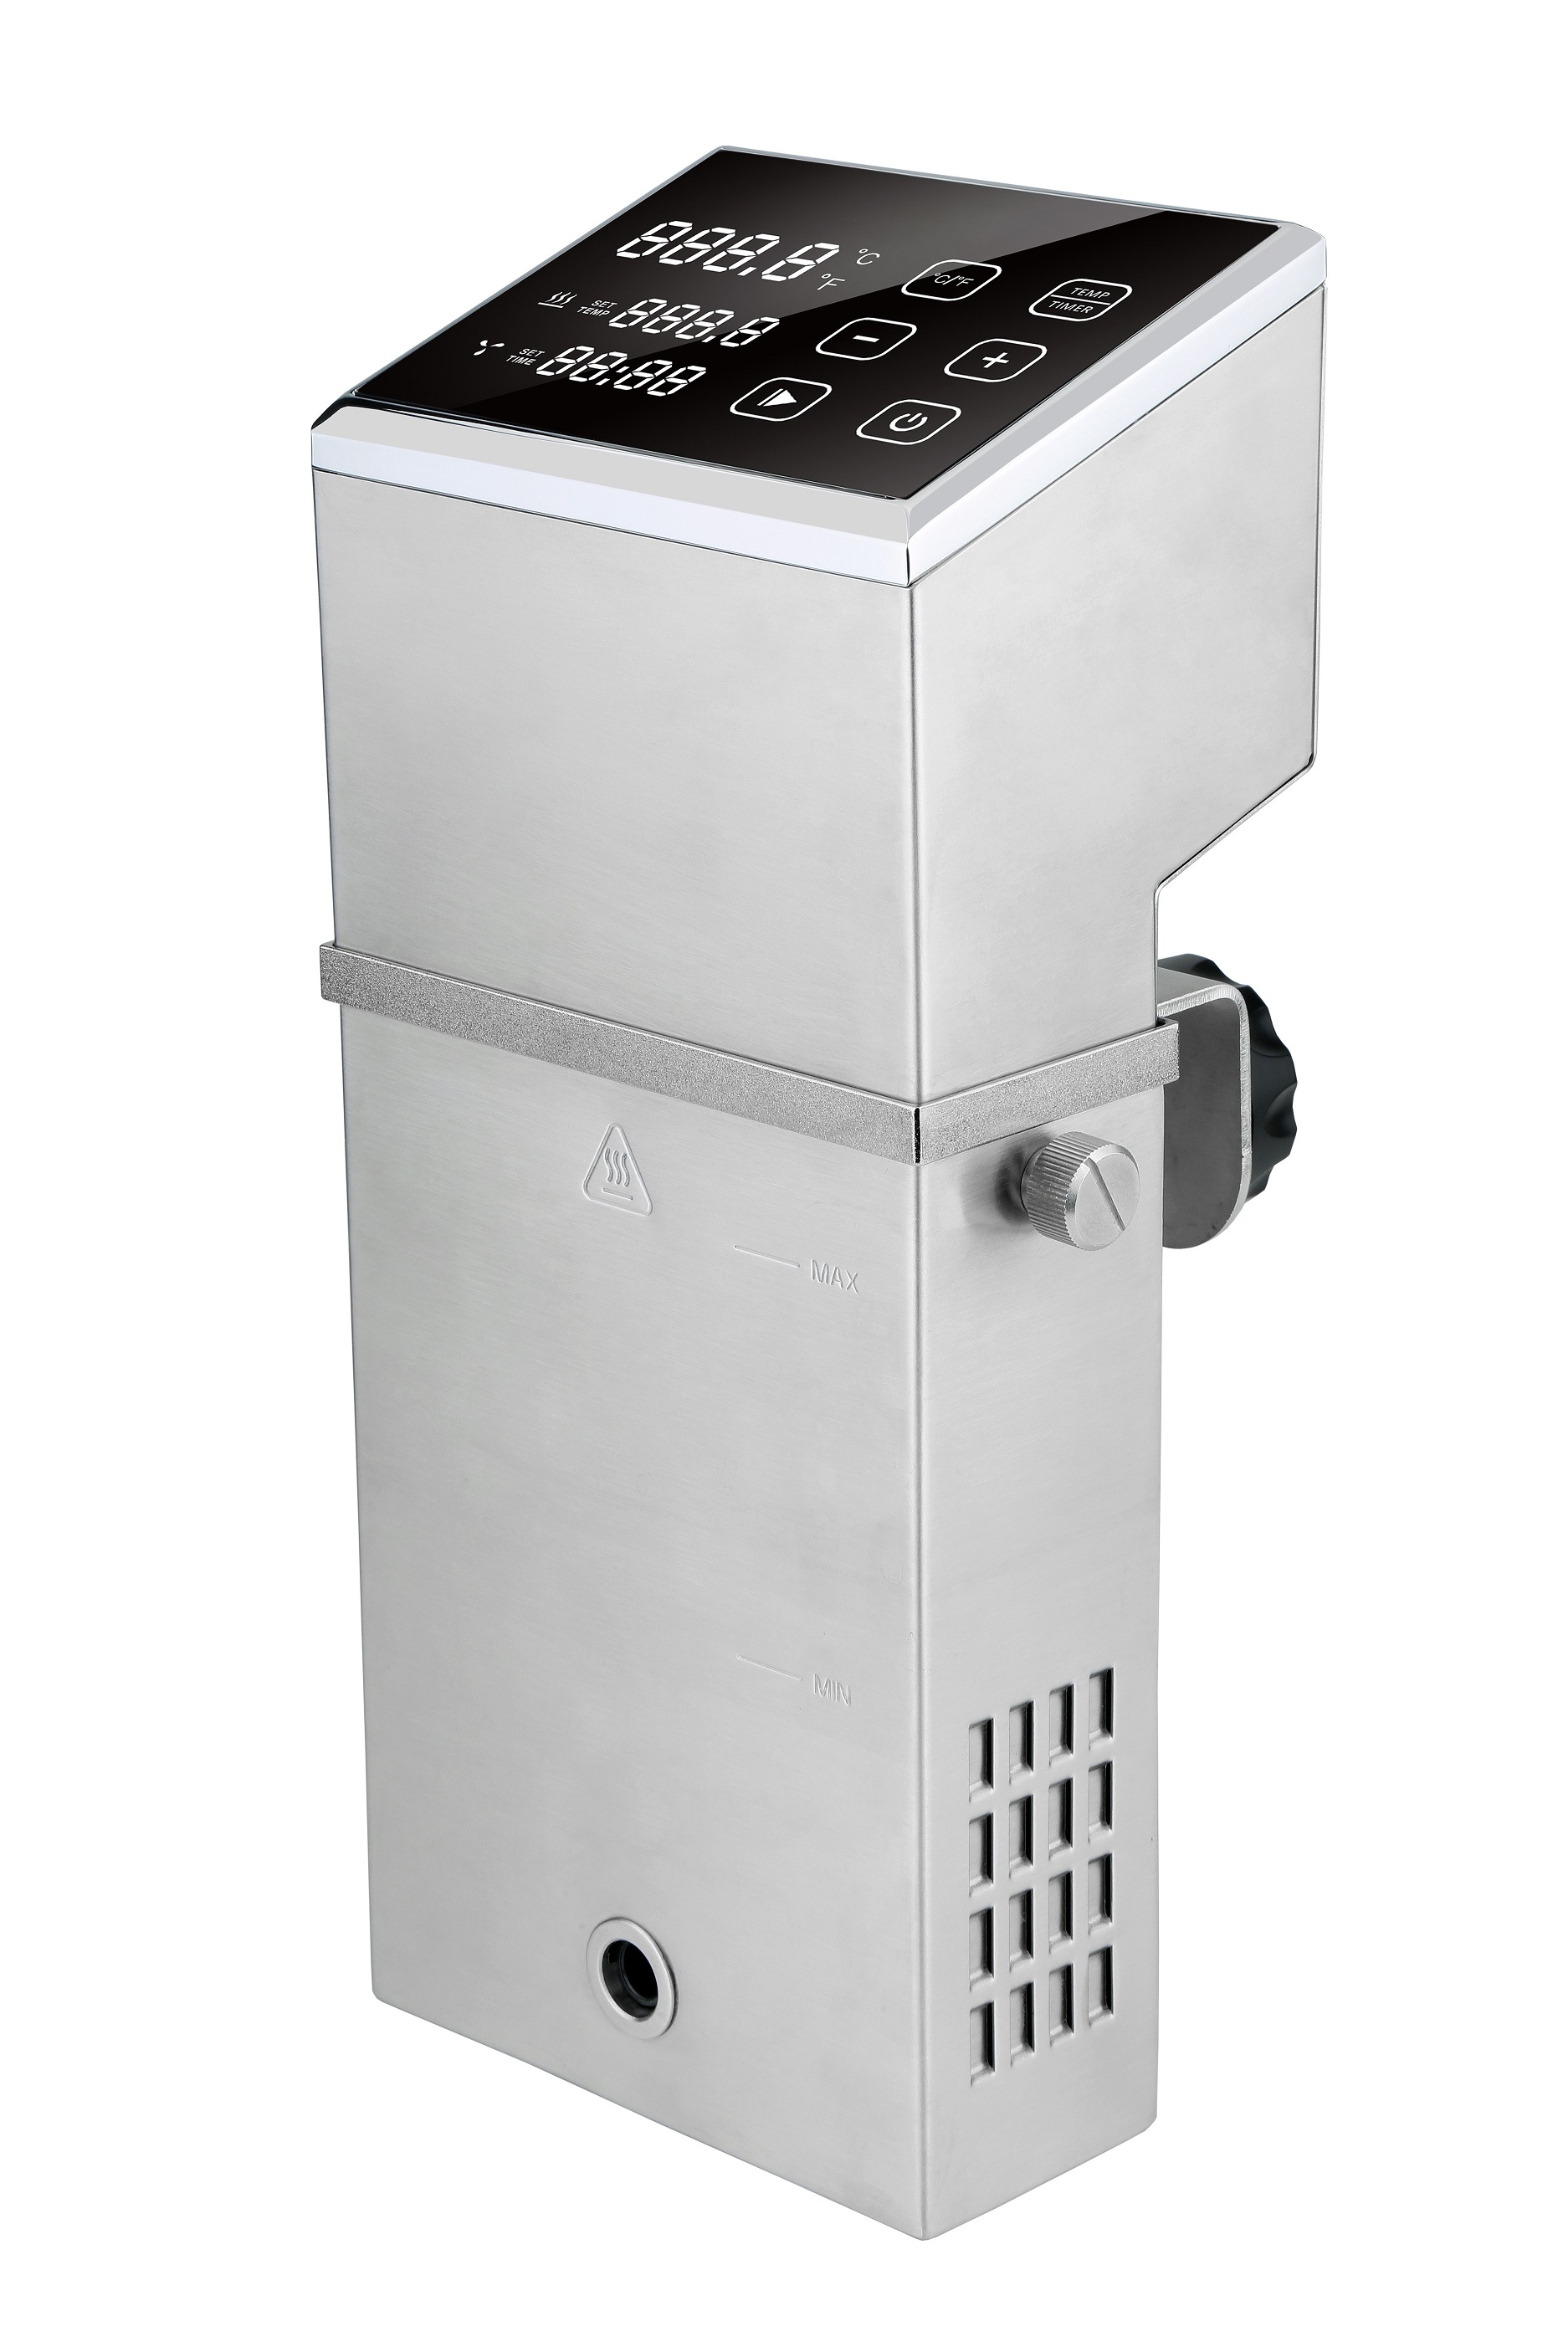 Eurodib USA SV-310 sous-vide cooking